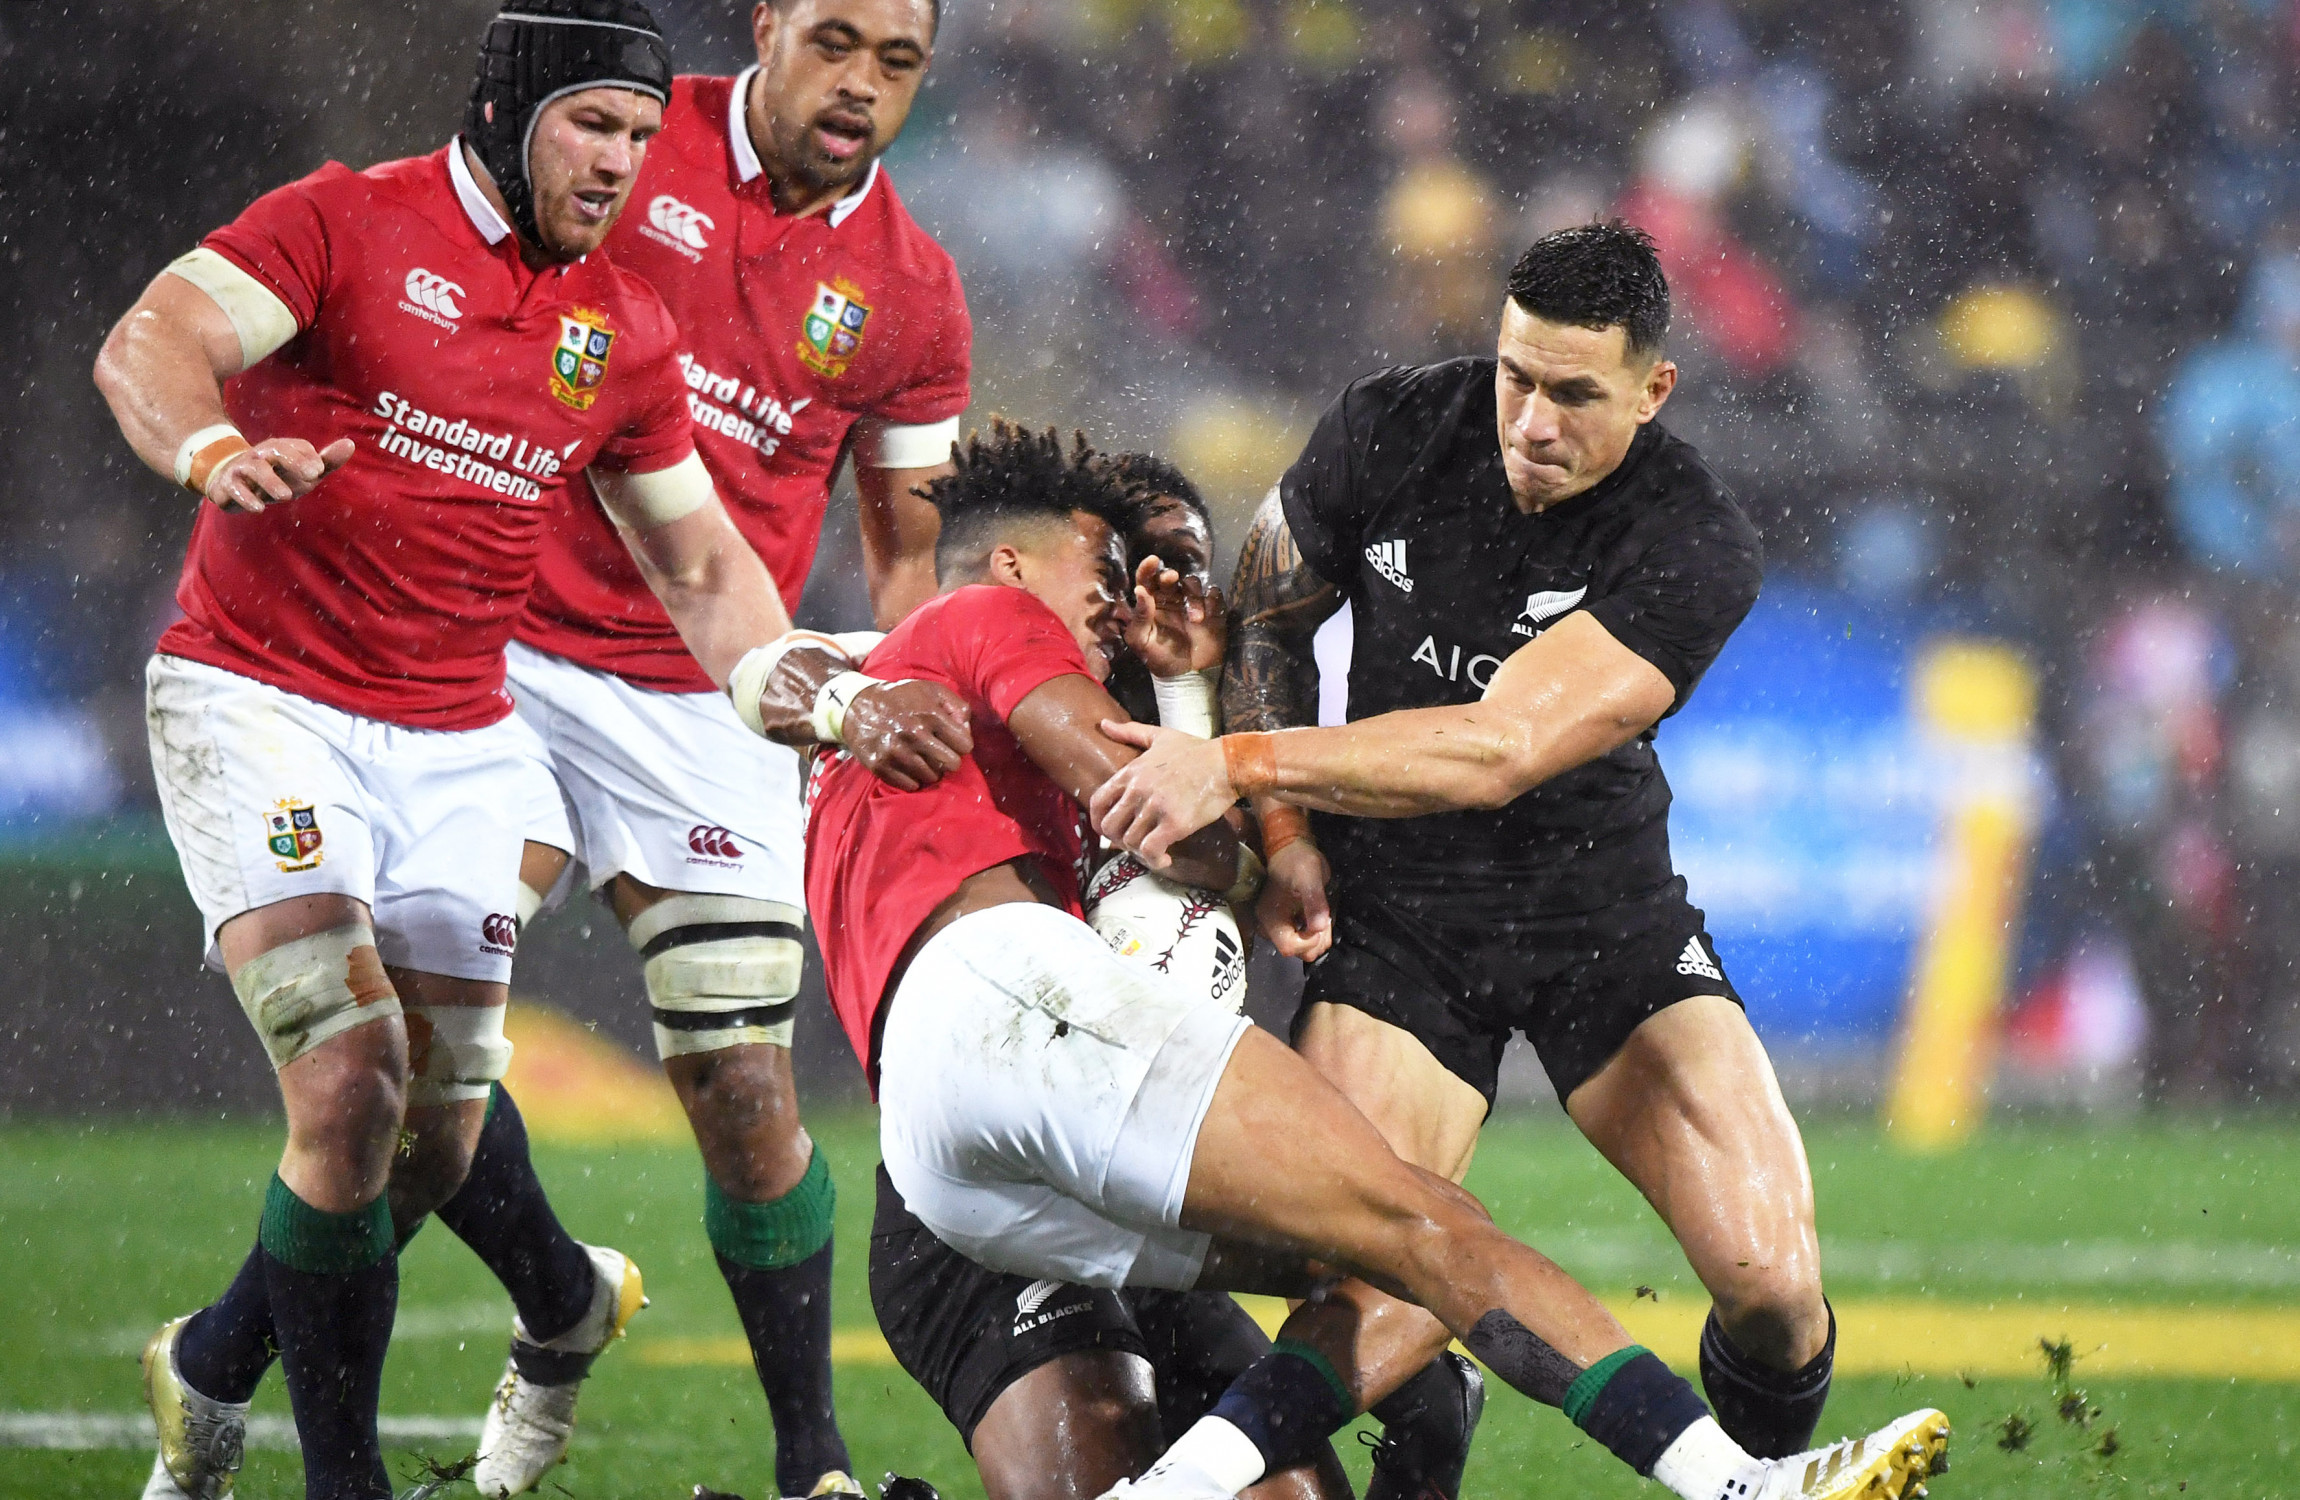 Sonny Bill Williams cleared to play for New Zealand against Australia